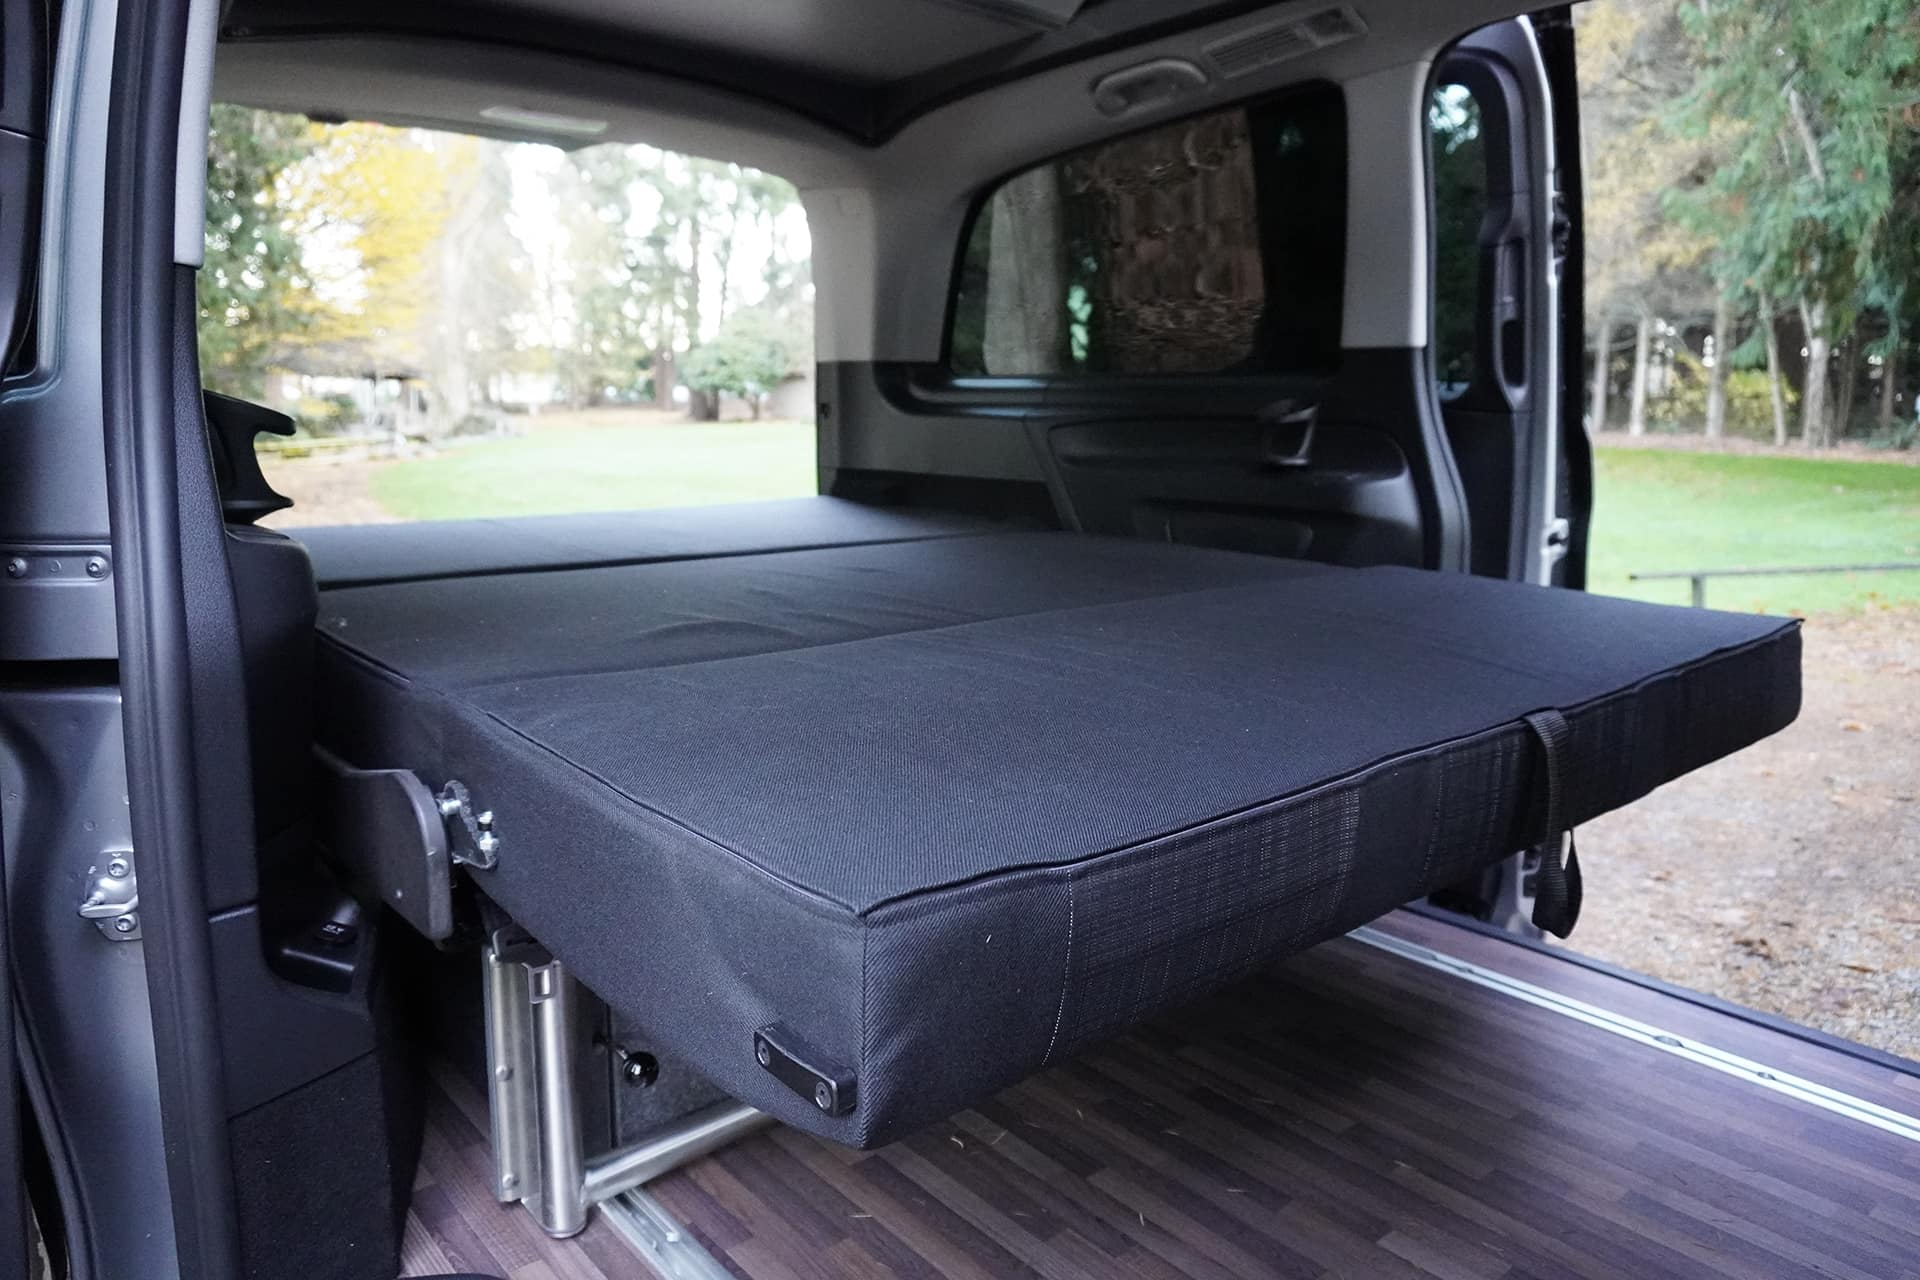 Backroad Metris Camper Bed Setup